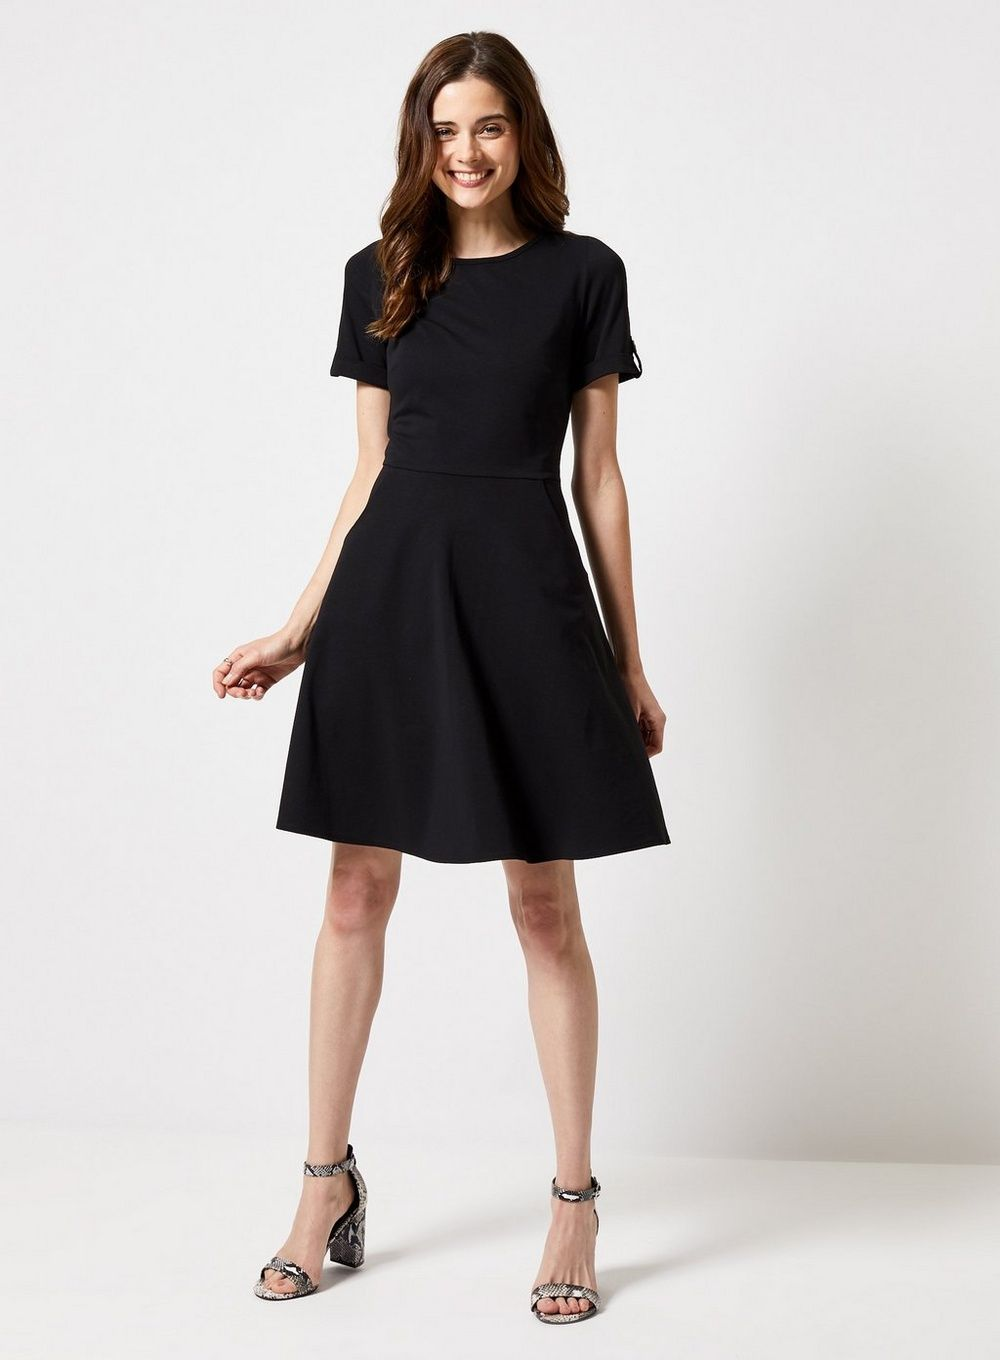 2fc74245bcda Black Short Sleeve T-Shirt Dress - View All New In - New In - Dorothy  Perkins United States